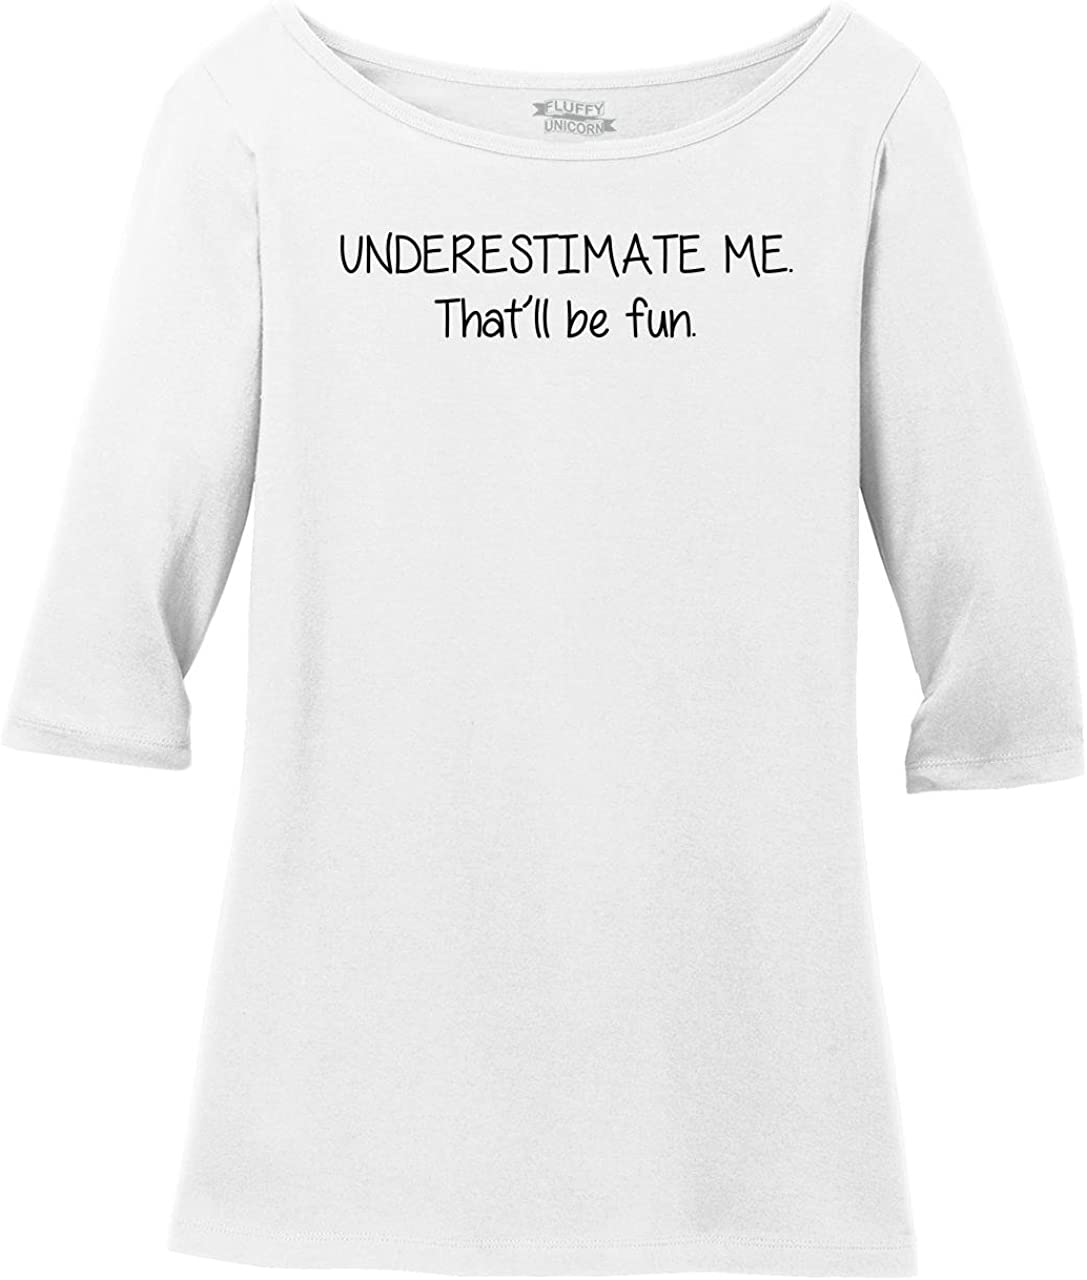 Sichun Underestimate Me Thatll Be Fun T Shirt,Leopard Letter Print Side Button for Women Long Sleeve Tunic Tops